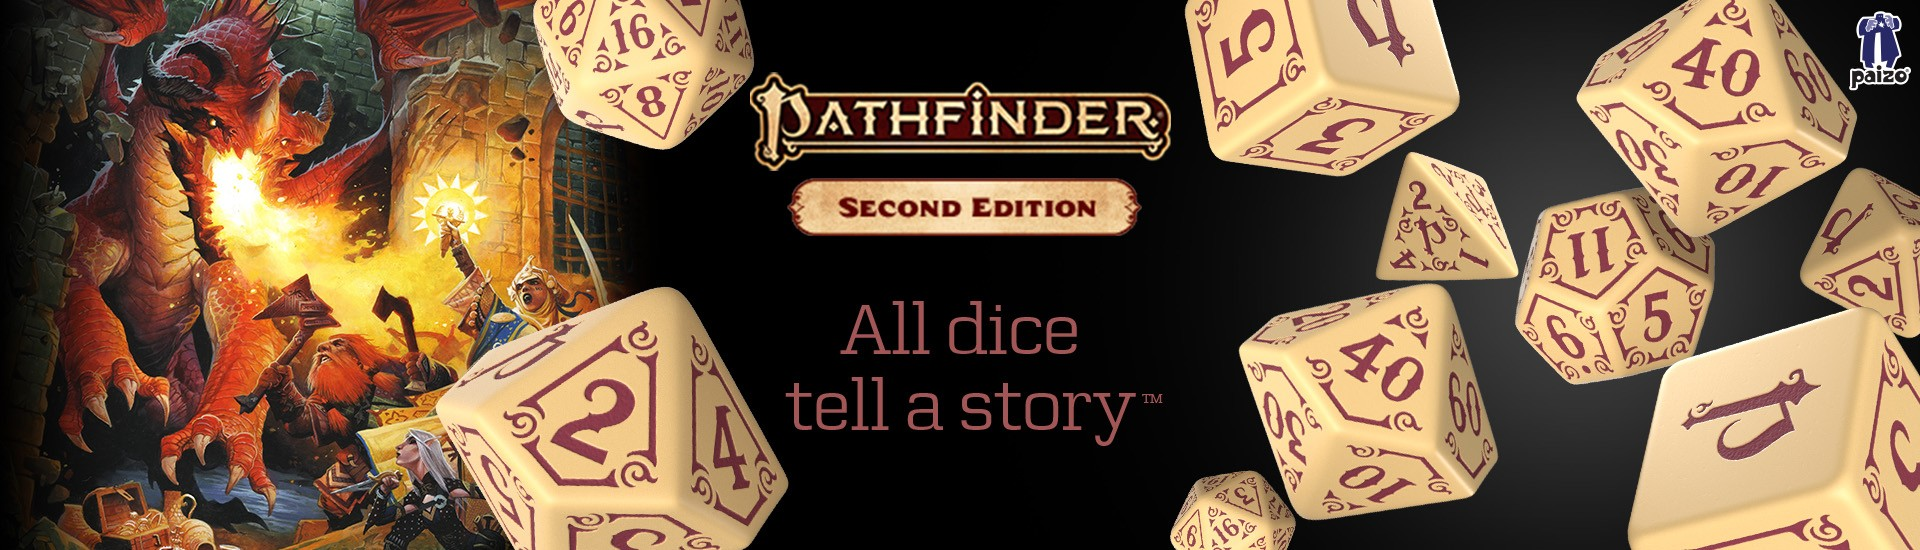 New! Pathfinder Second Edition Dice Set